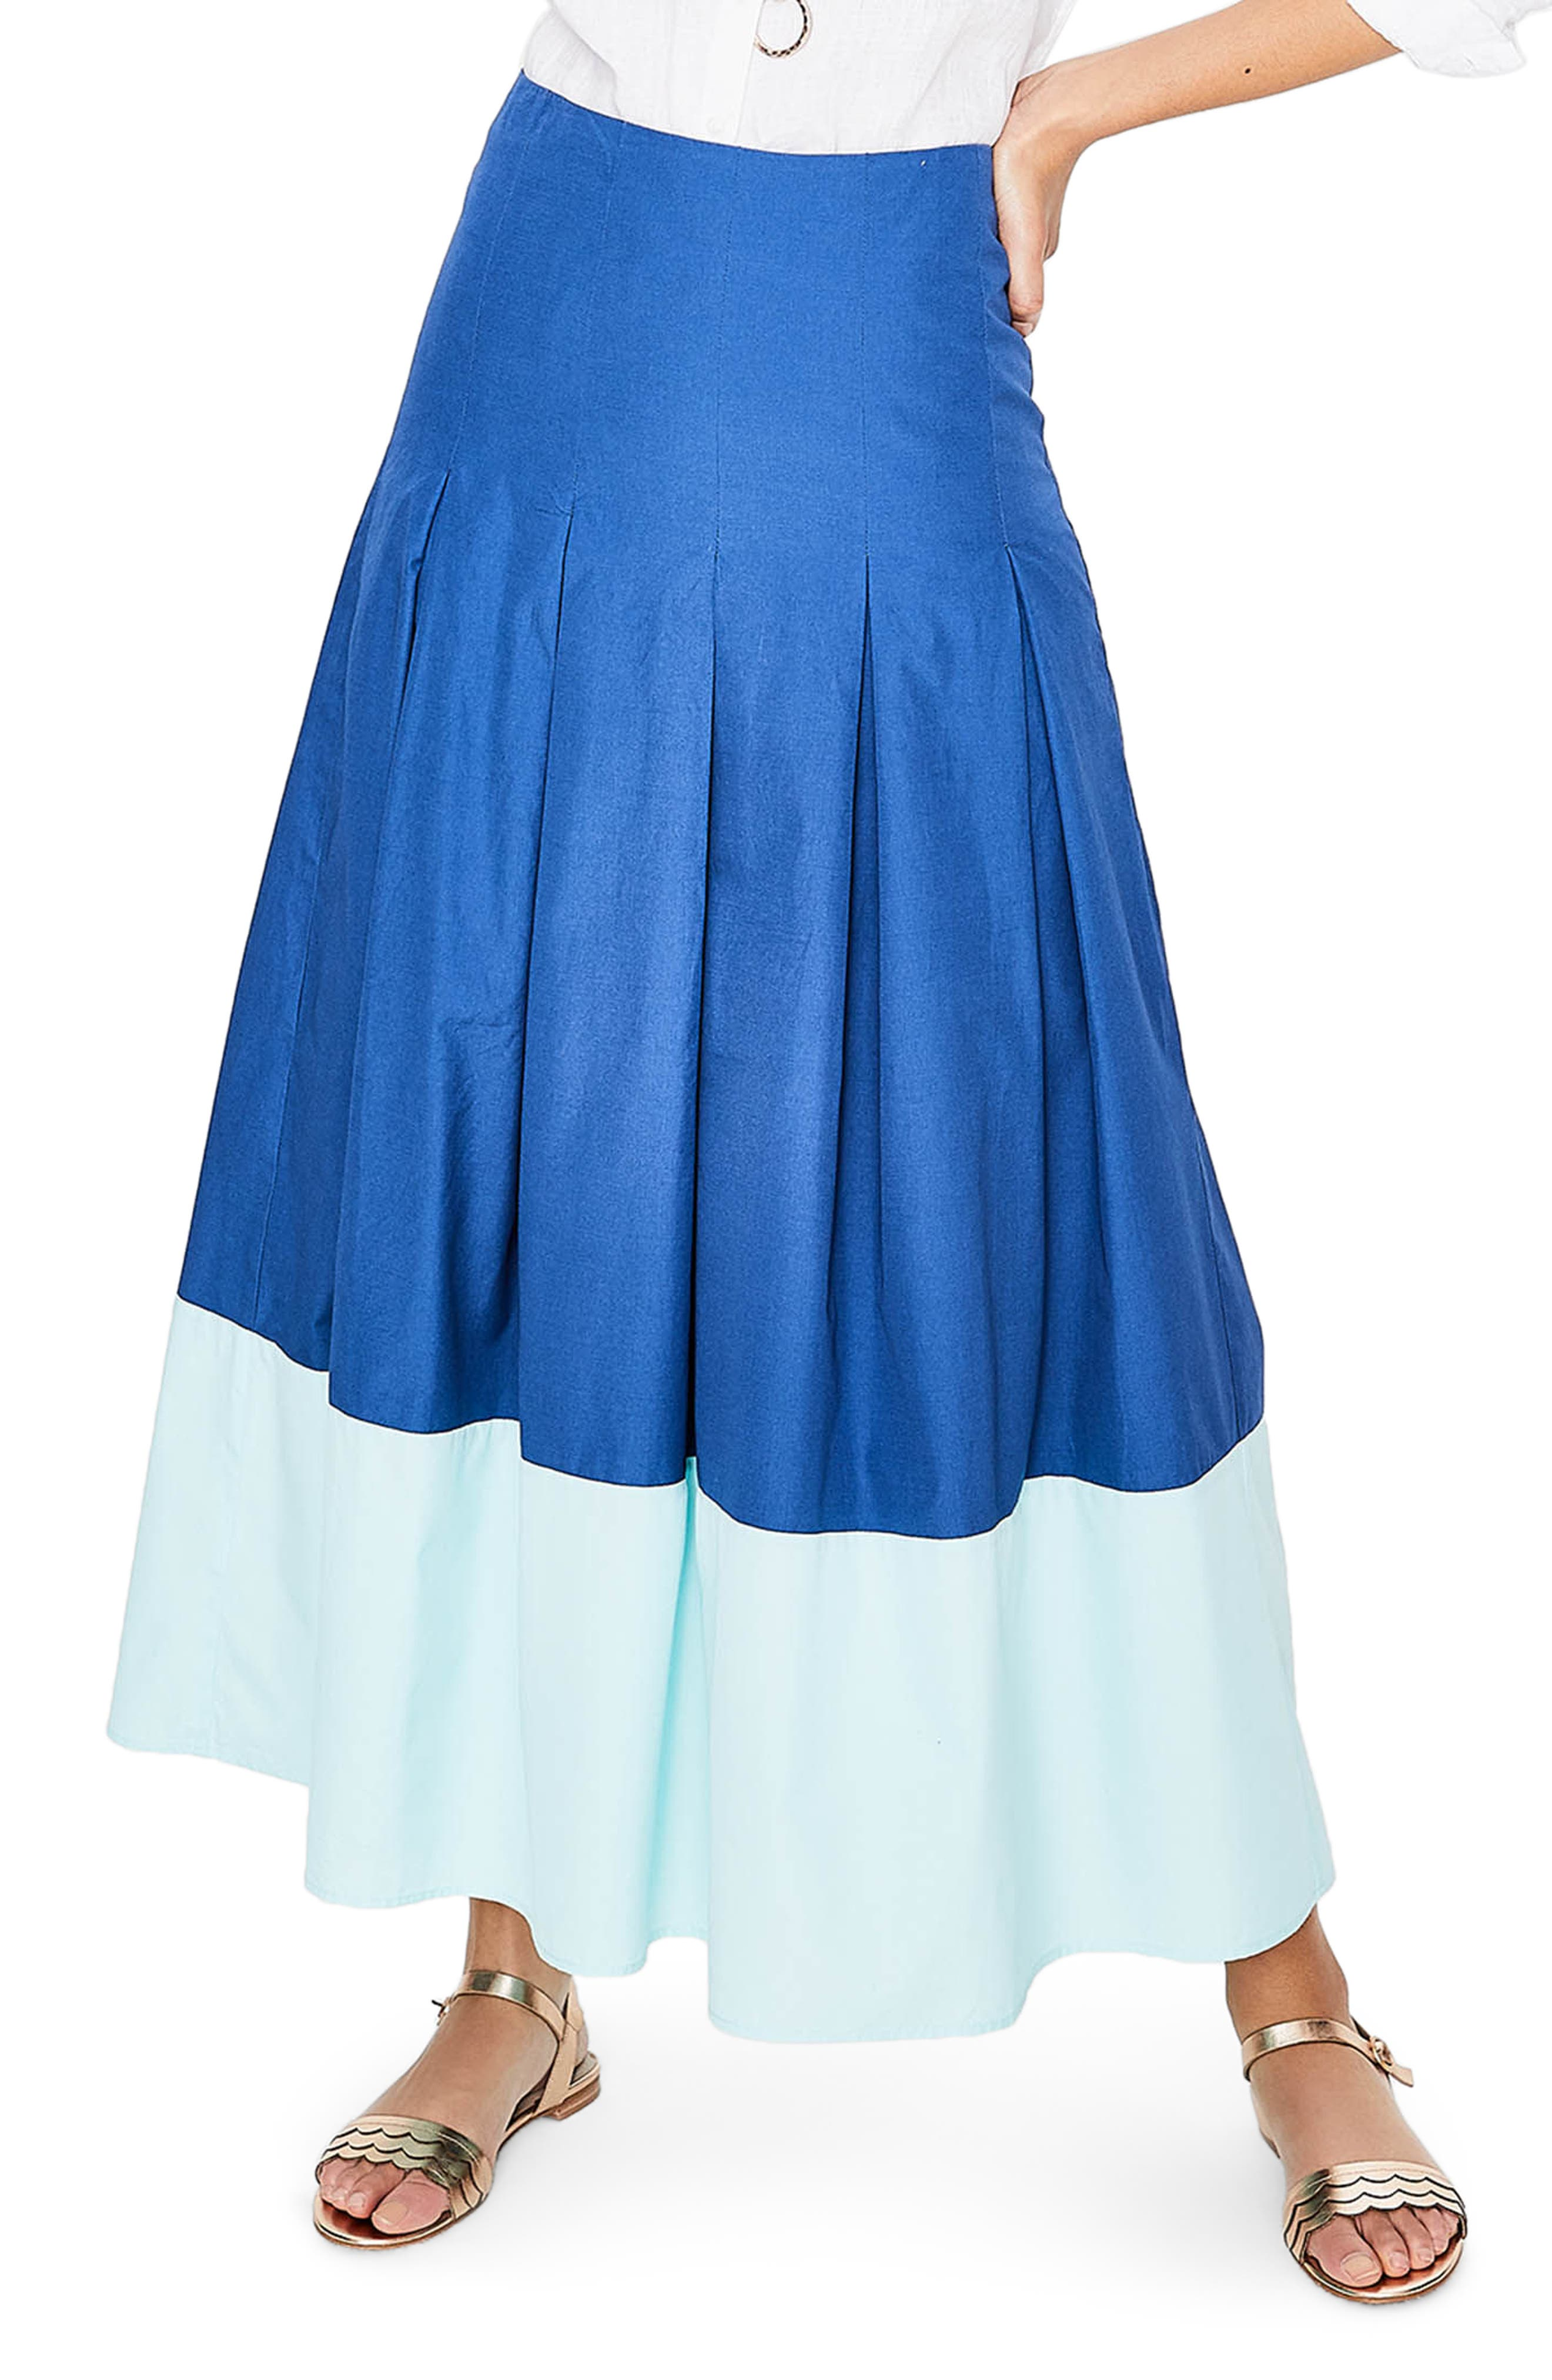 Beatrice Flare Midi Skirt,                             Main thumbnail 1, color,                             Riviera Blue W Rippl